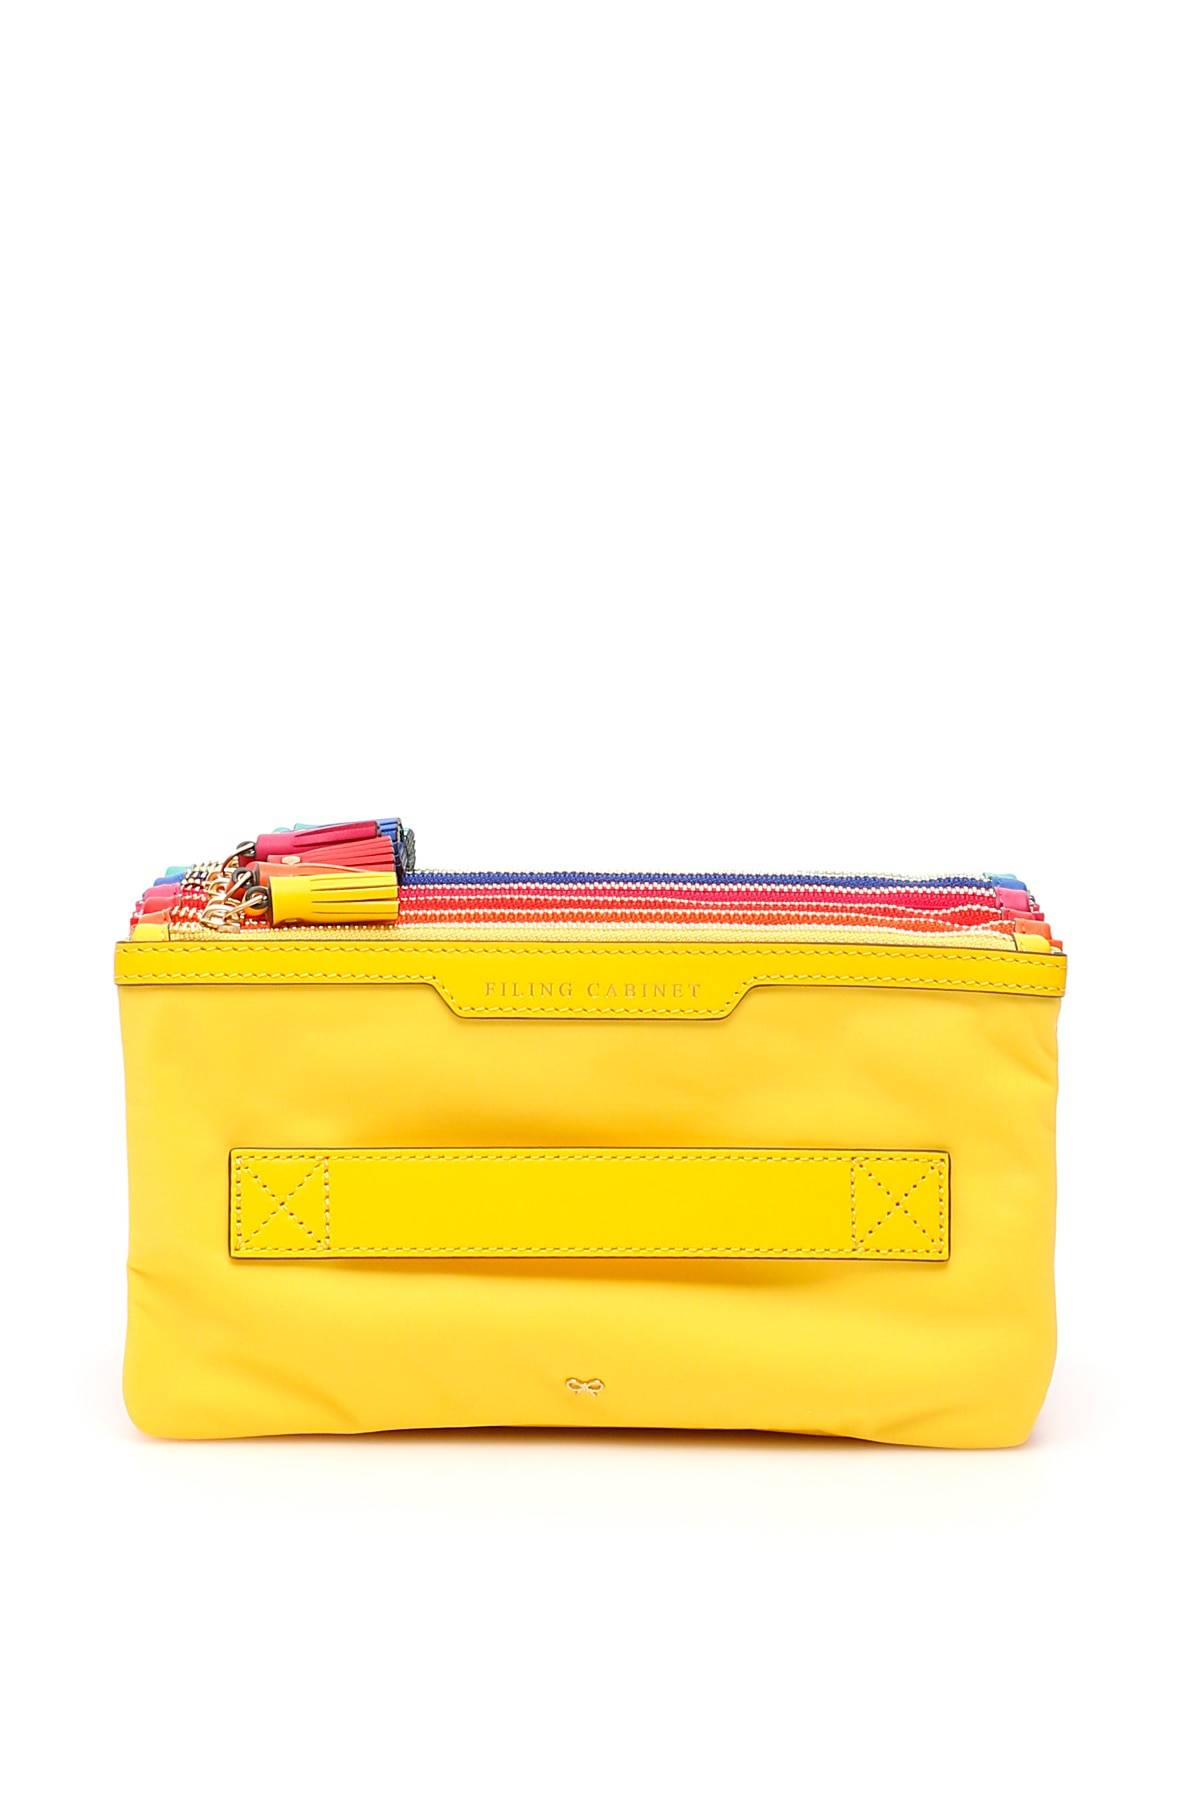 anya hindmarch pouch filing cabinet multi pocket os giallo, fuxia, blu tecnico, pelle